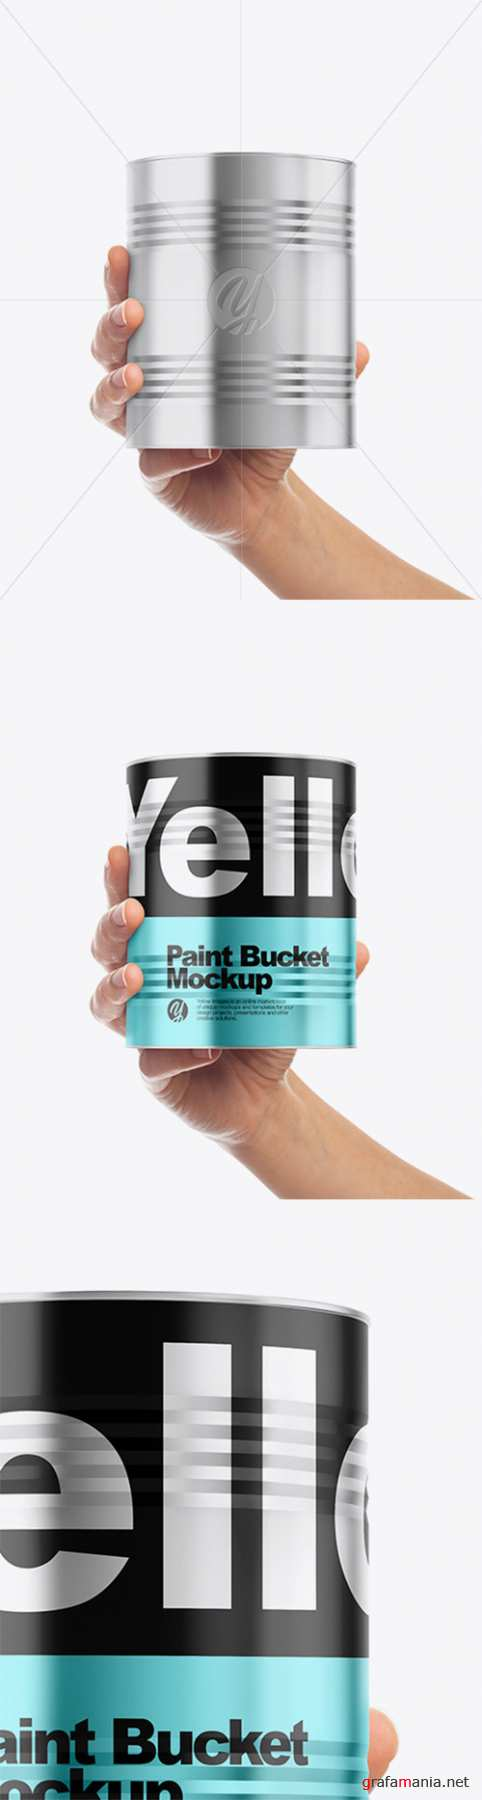 Metallic Paint Bucket in Hand Mockup - Front View 60761